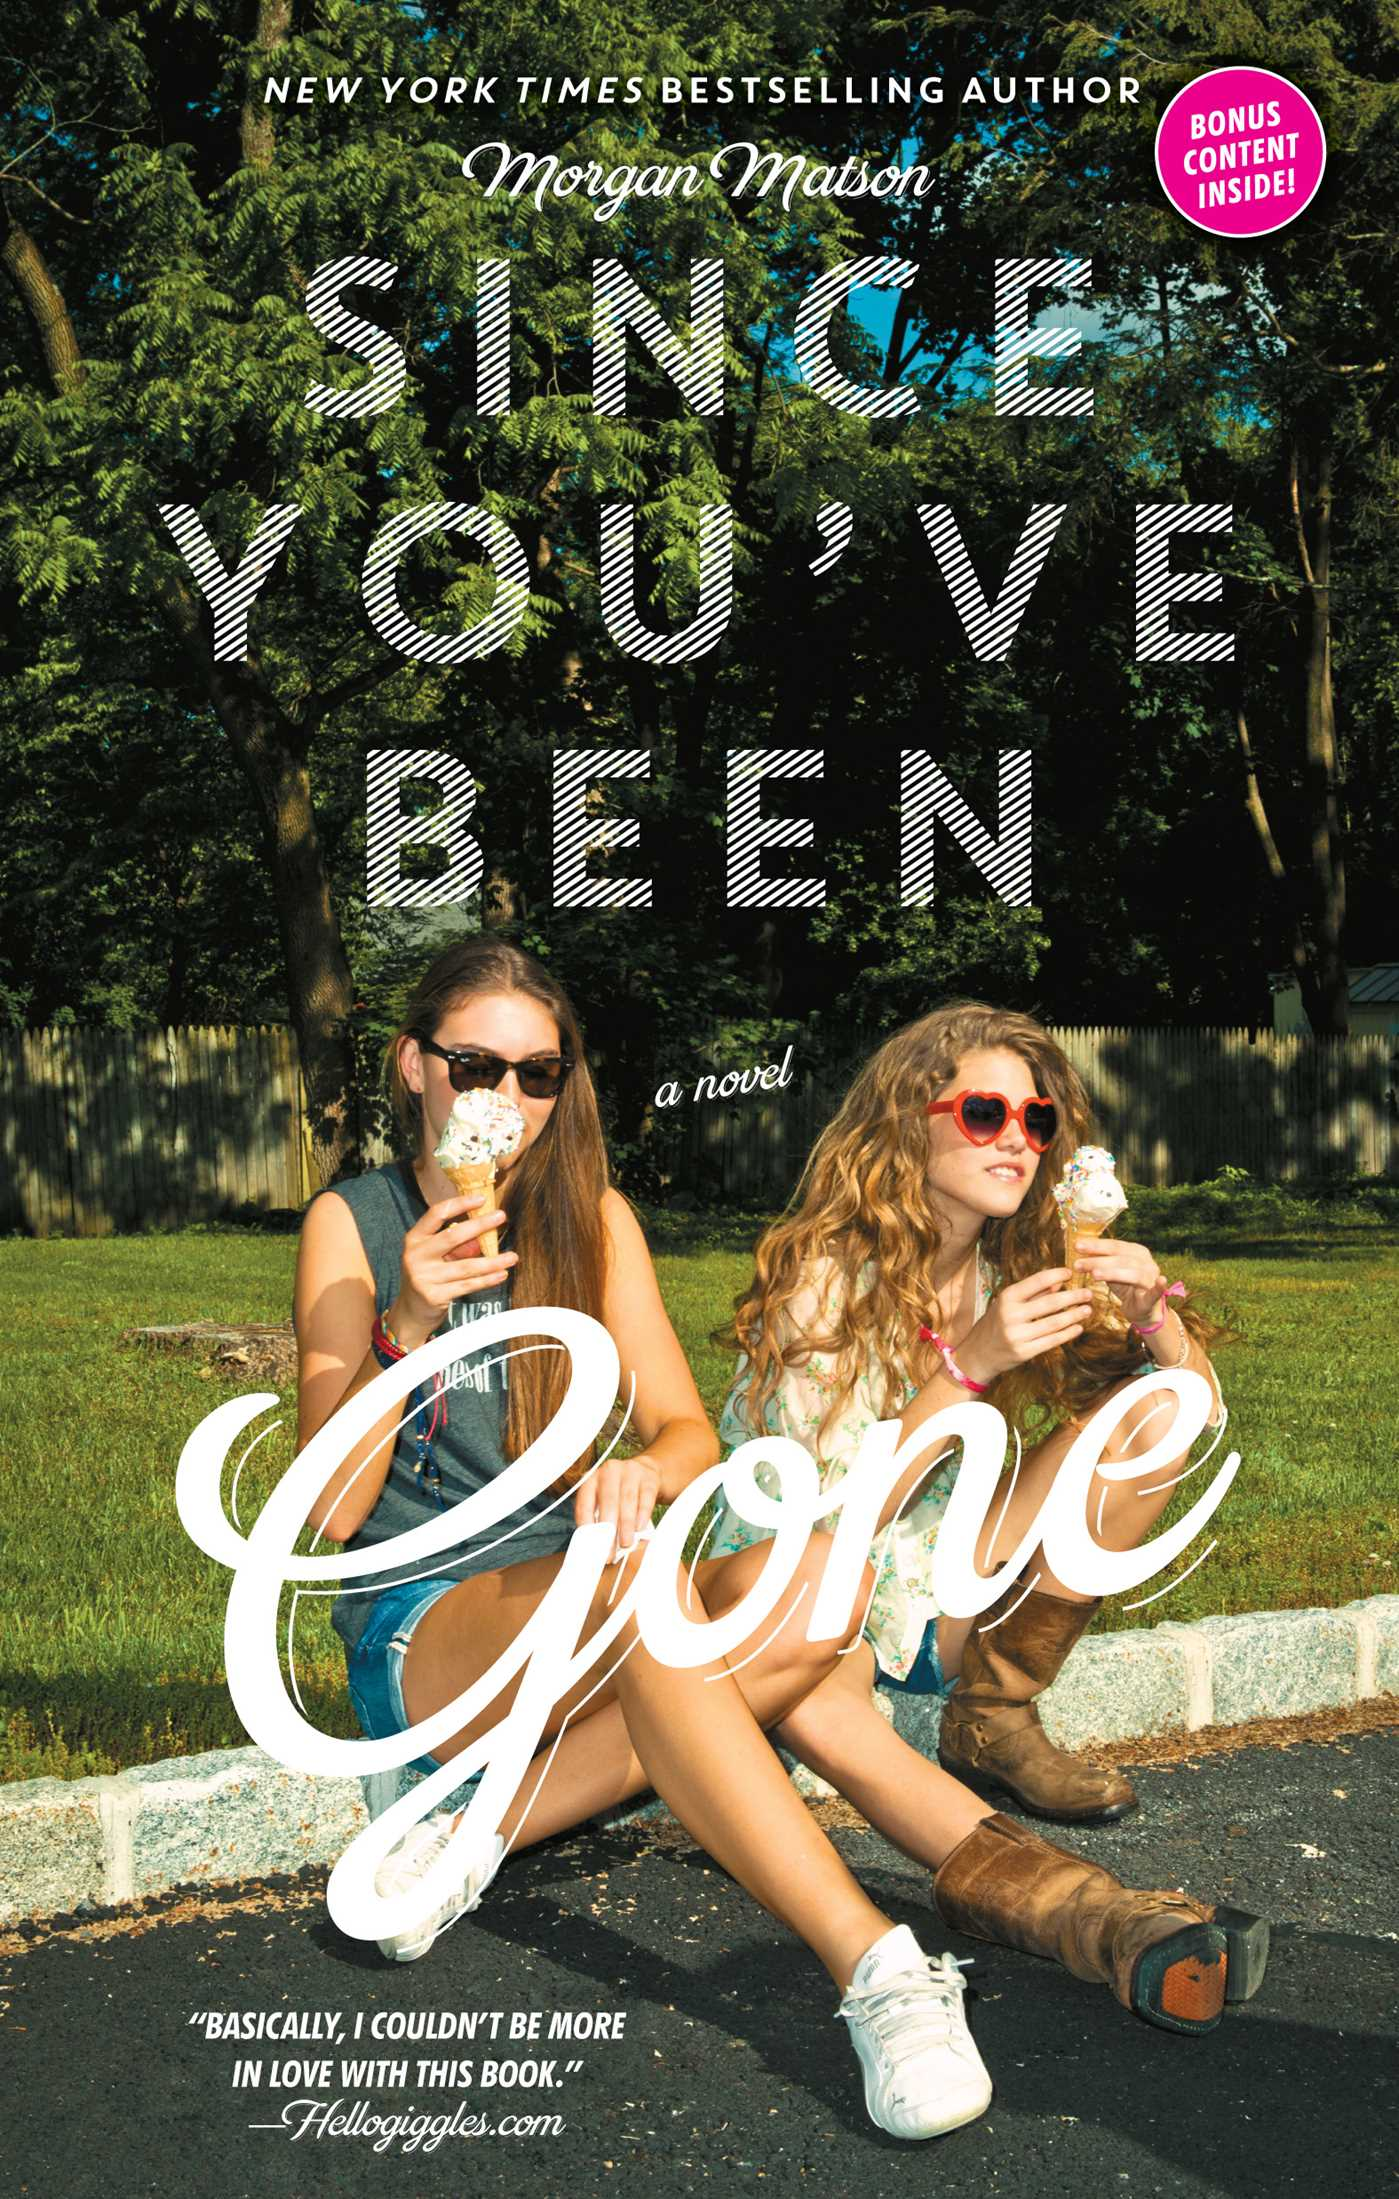 http://www.simonandschuster.com/books/Since-Youve-Been-Gone/Morgan-Matson/9781442435018